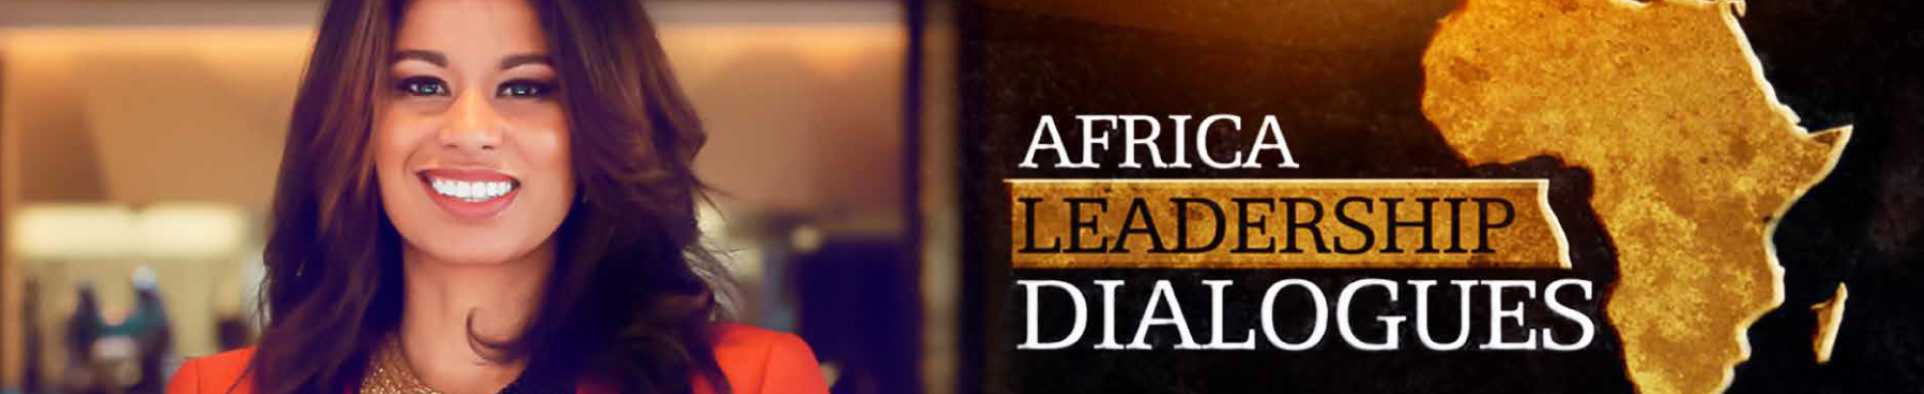 Africa-Leadership-Dialogues